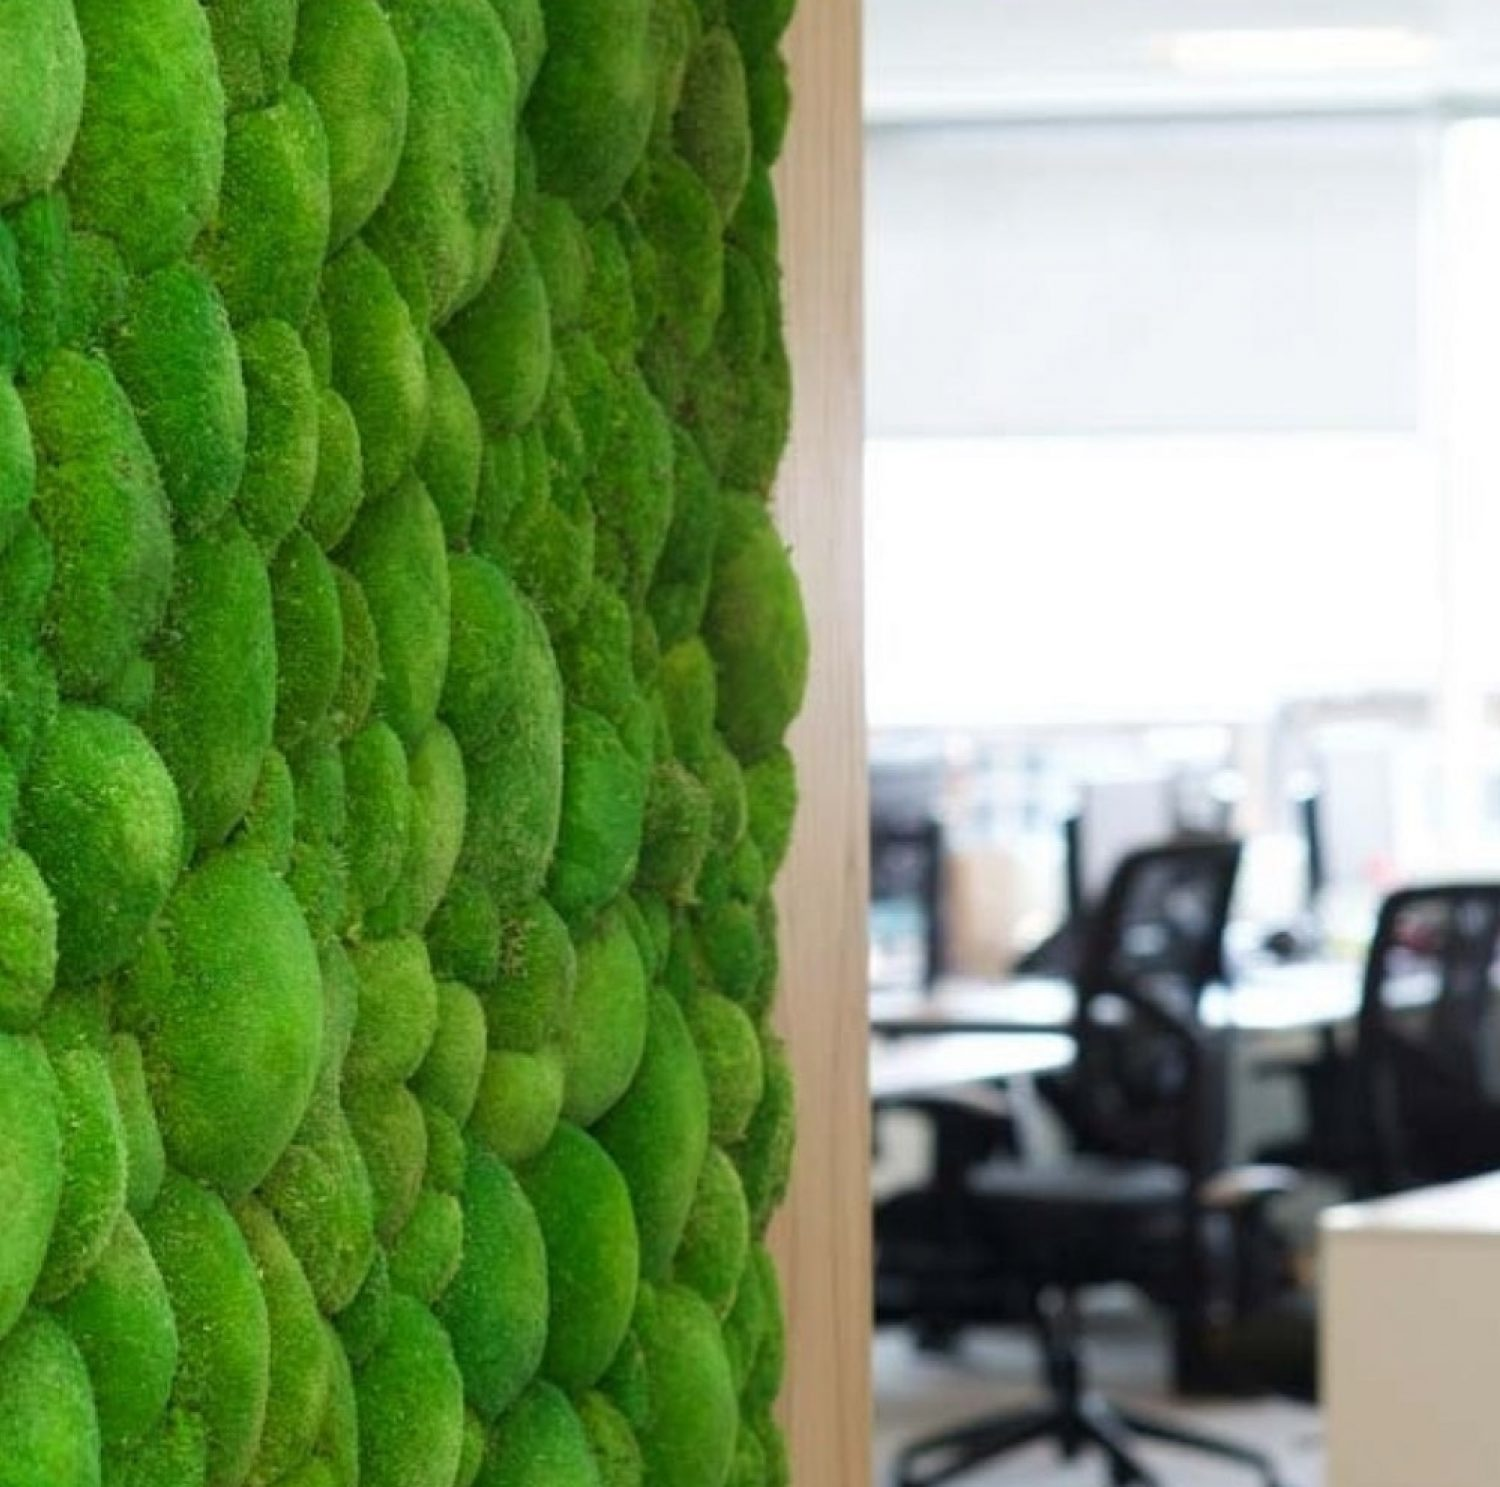 Living wall in relocated office